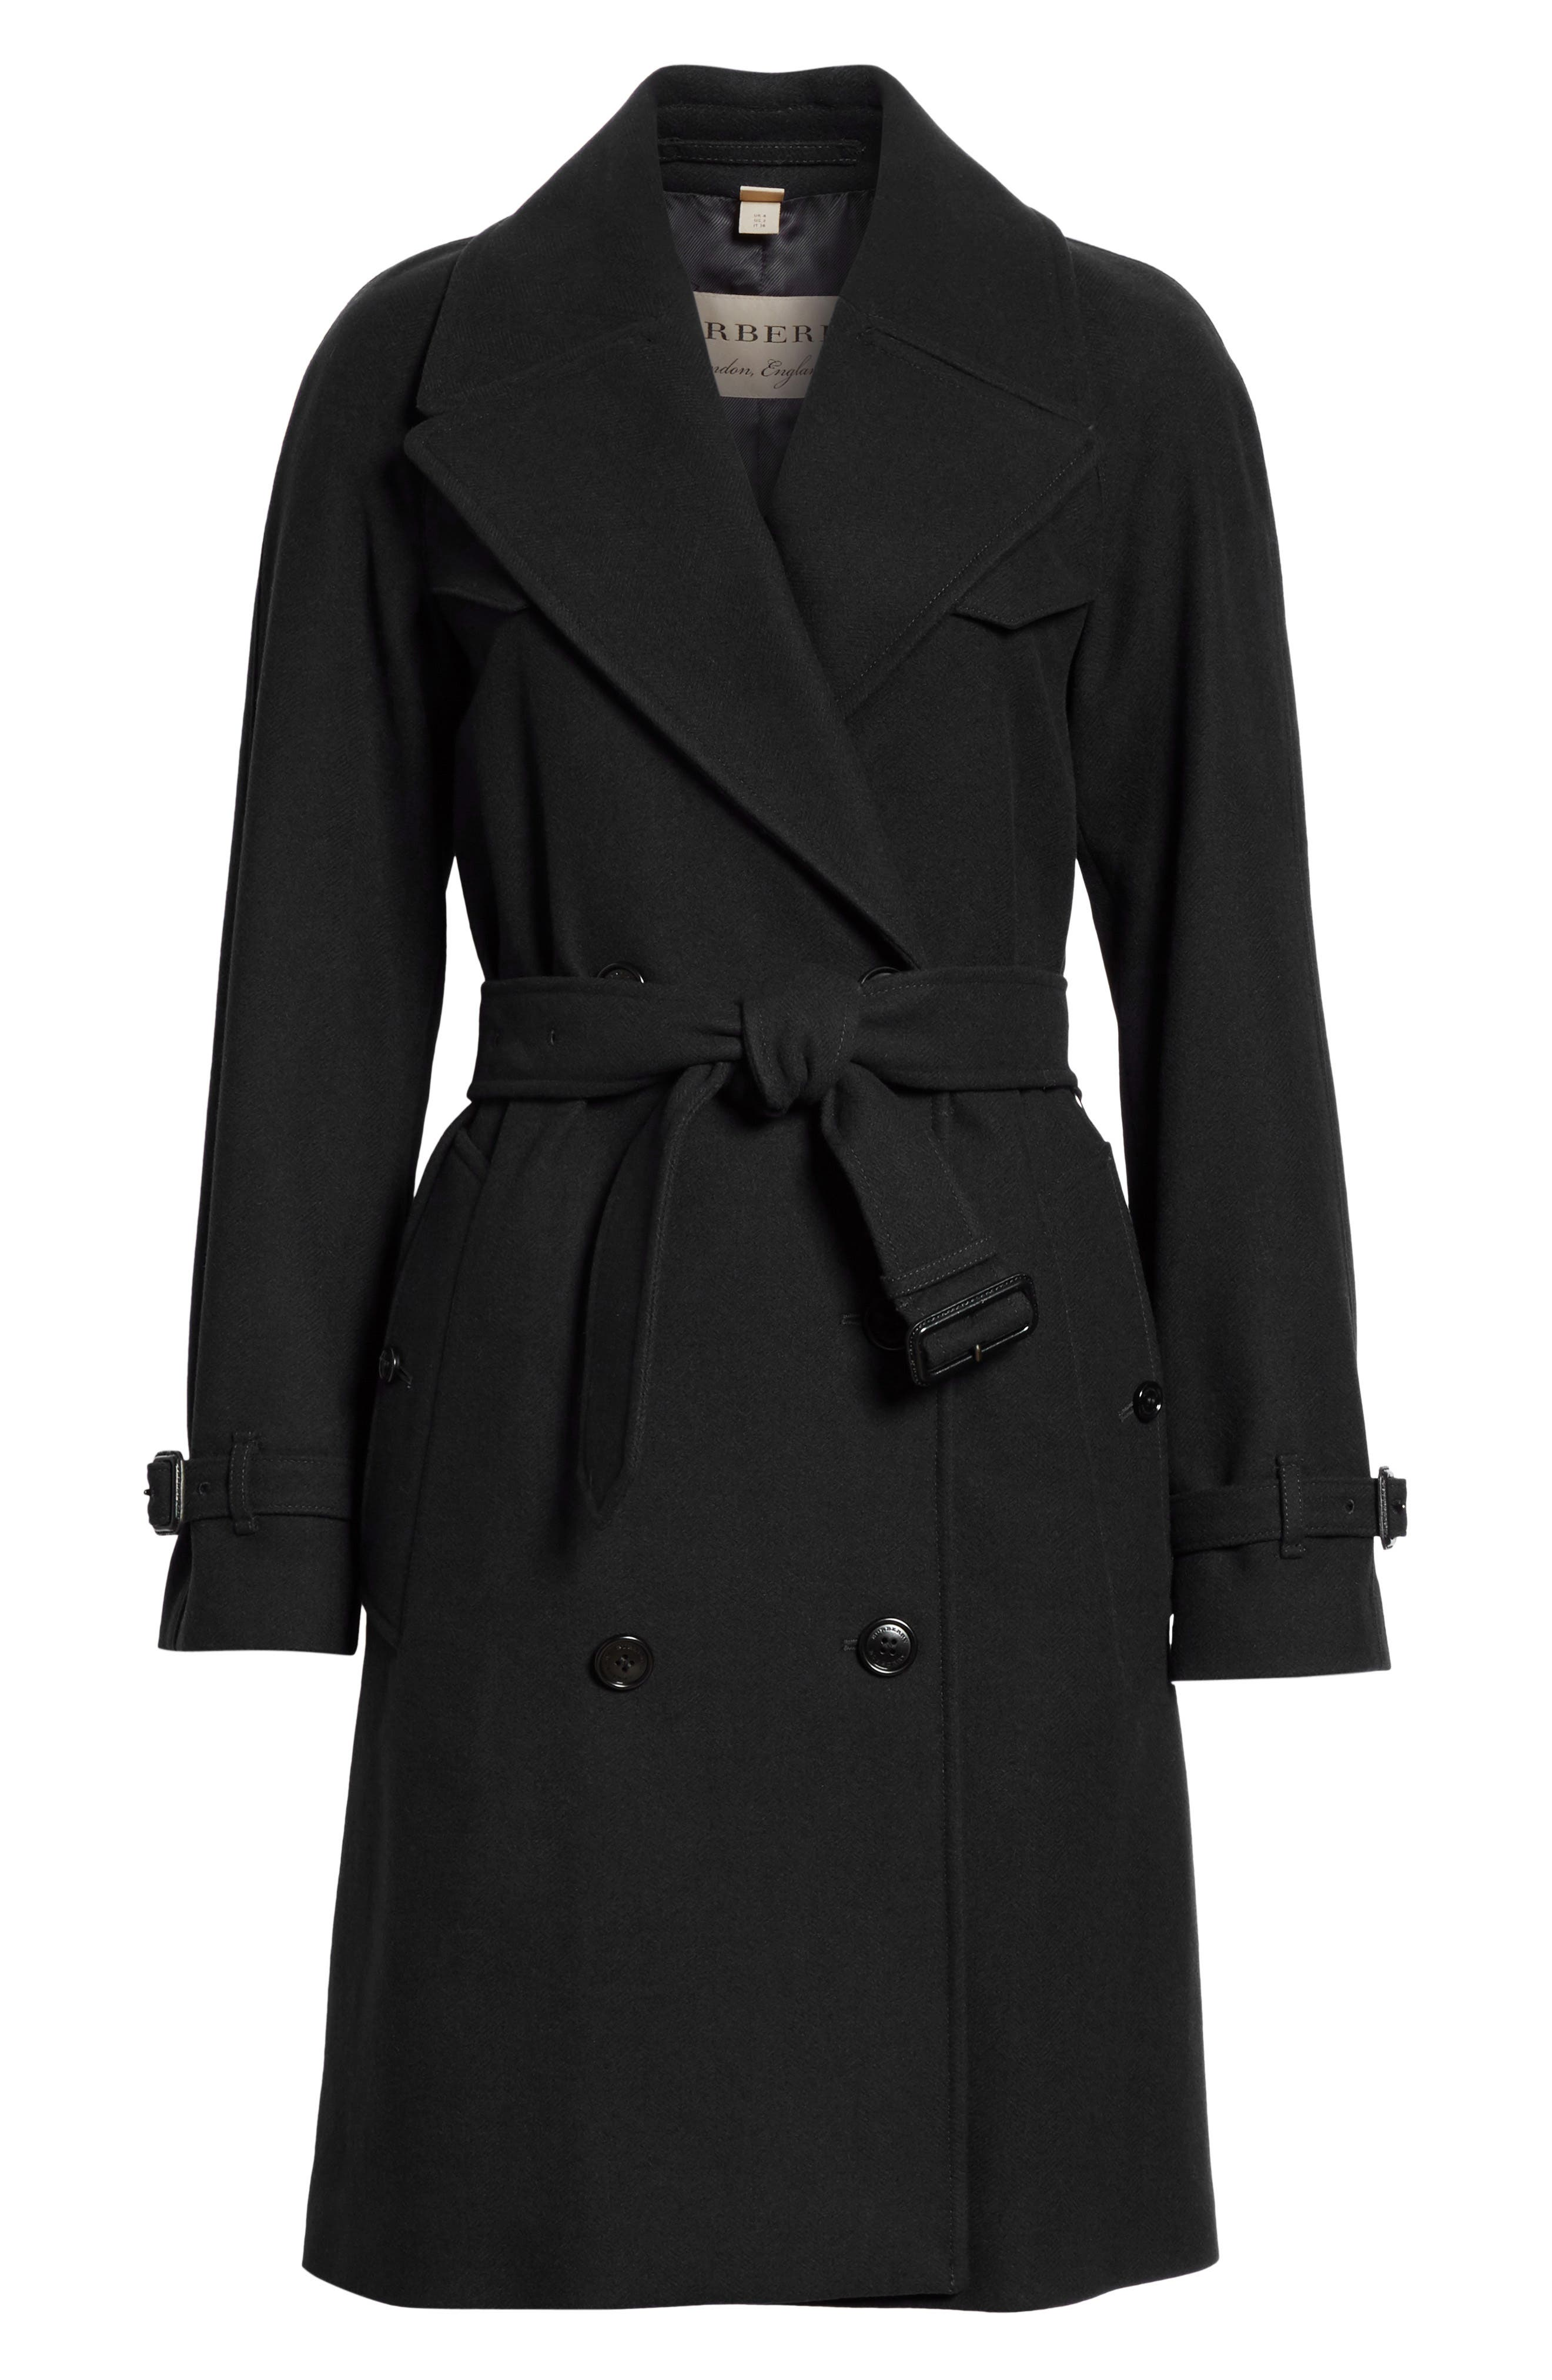 BURBERRY,                             Cranston Wool Blend Trench Coat,                             Alternate thumbnail 5, color,                             001